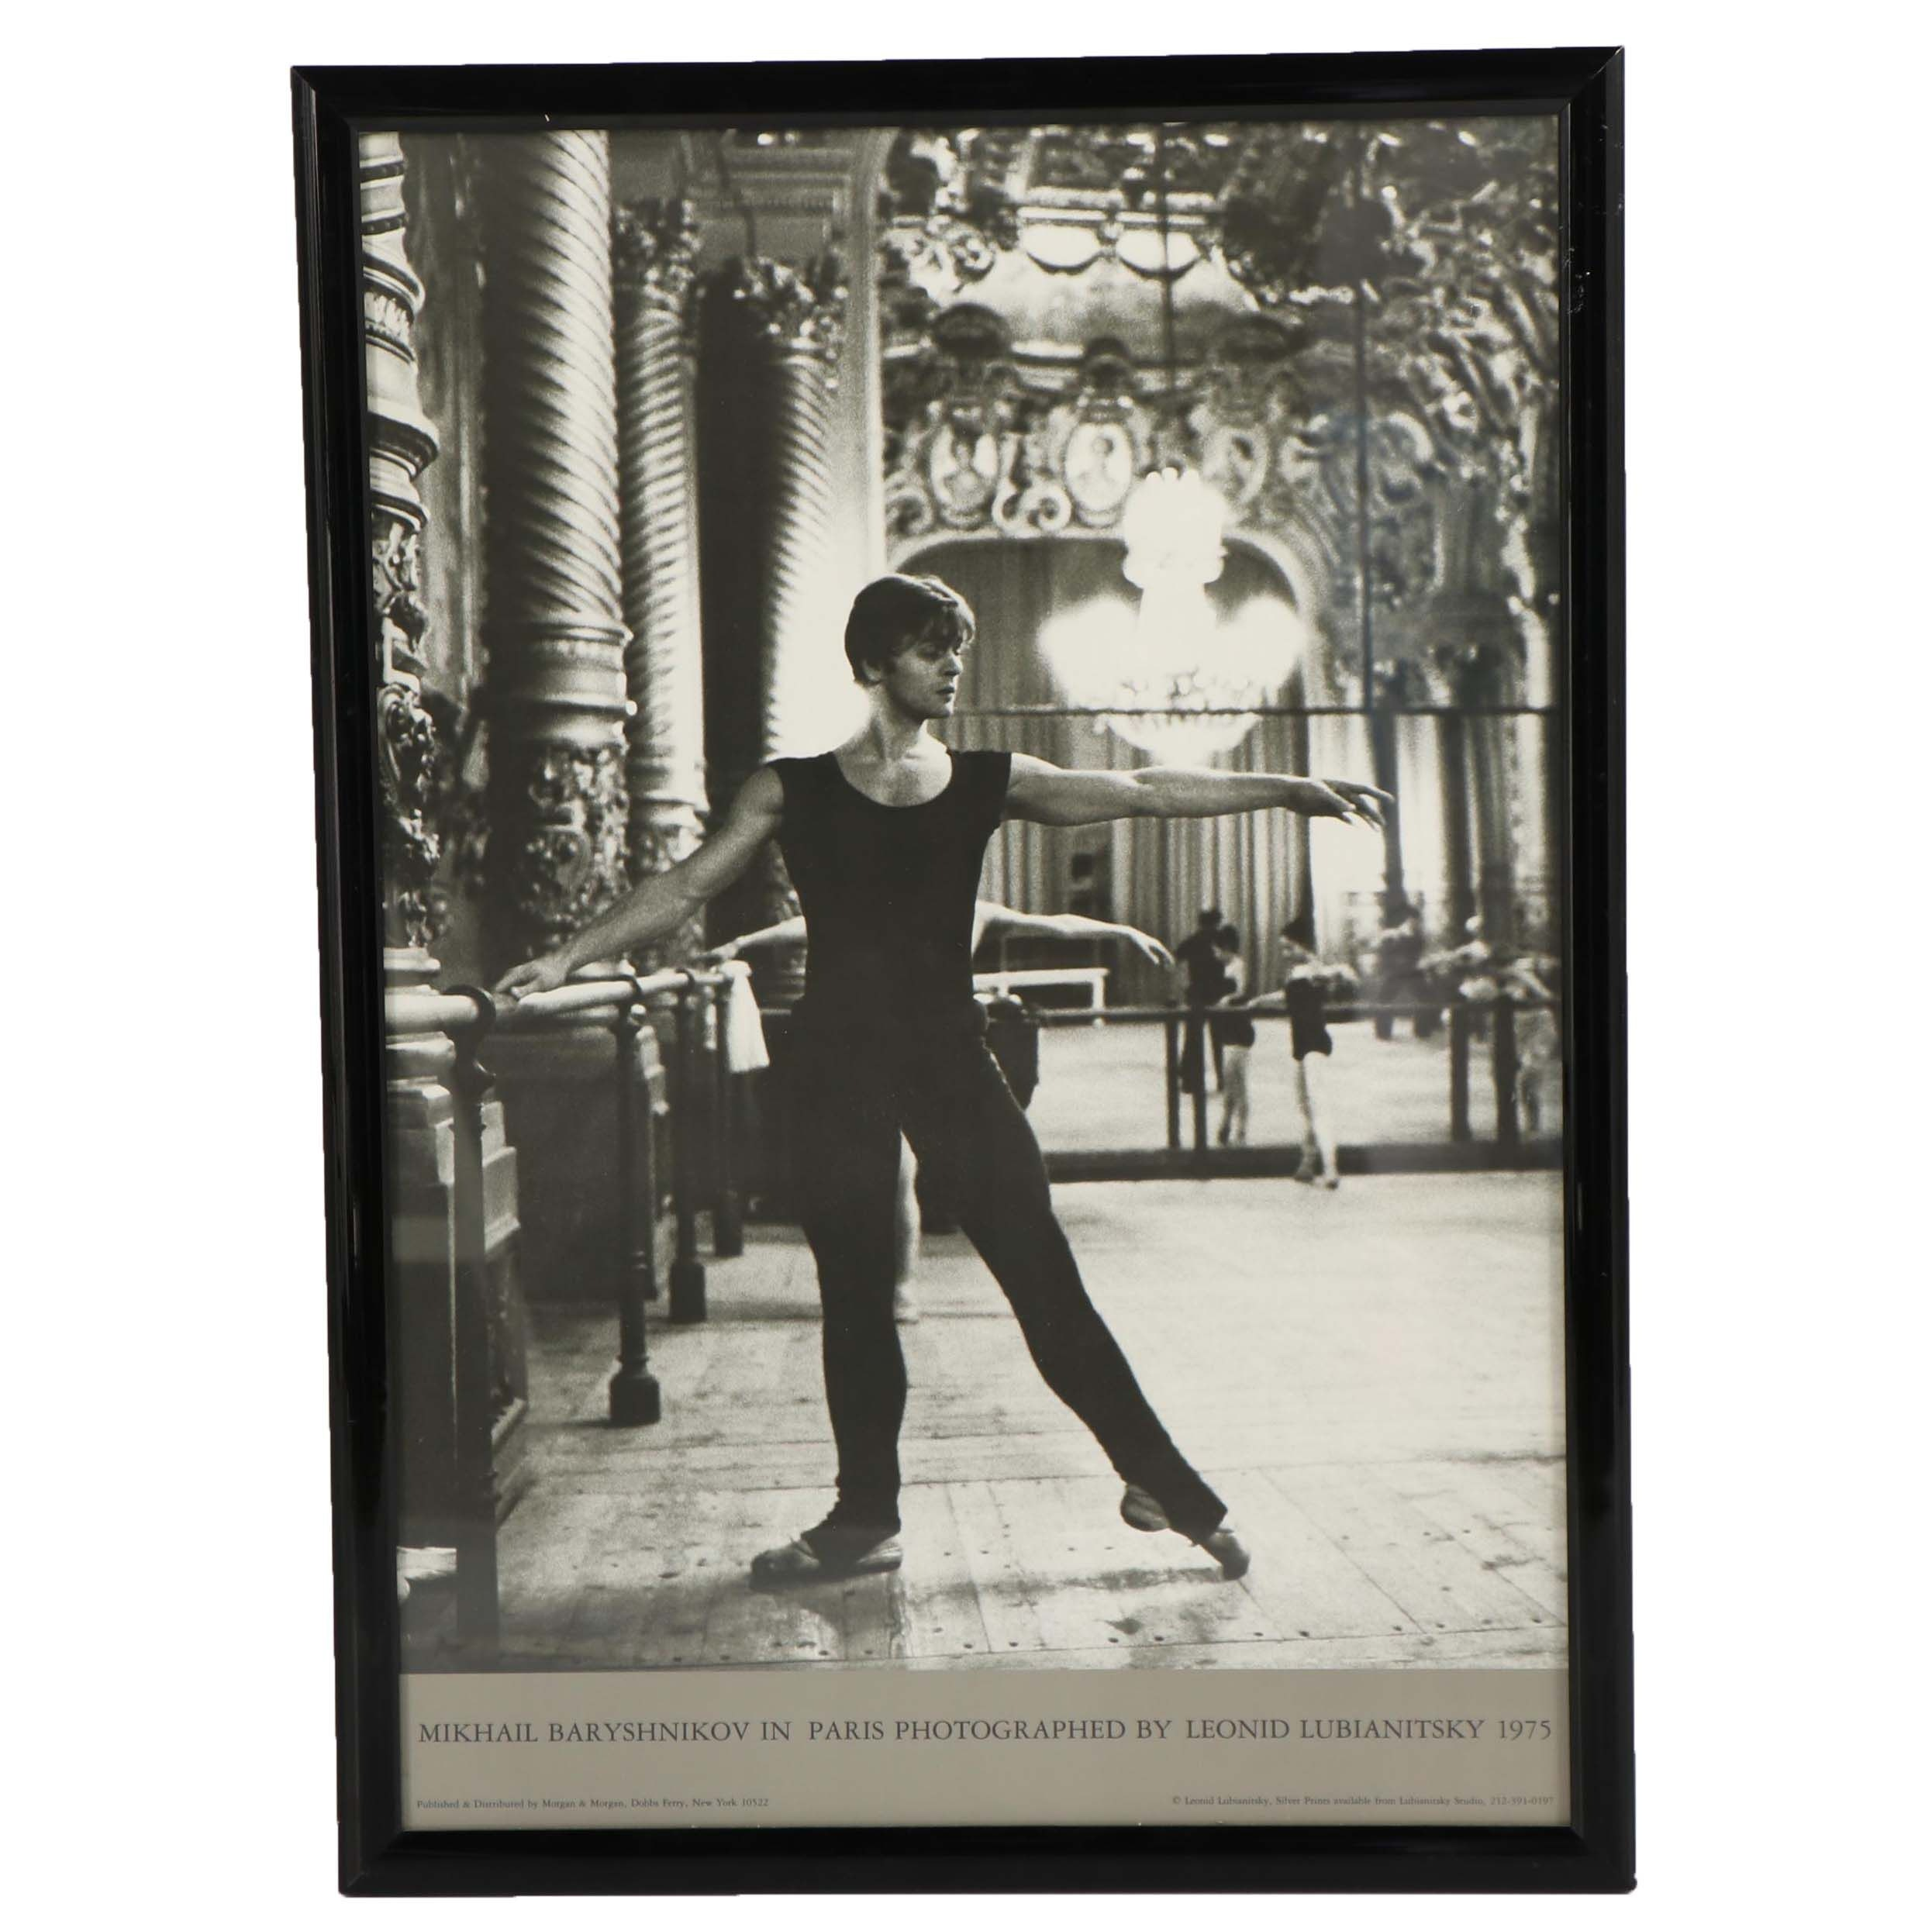 Leonid Lubianitsky Offset Lithograph of Mikhail Baryshnikov in Paris